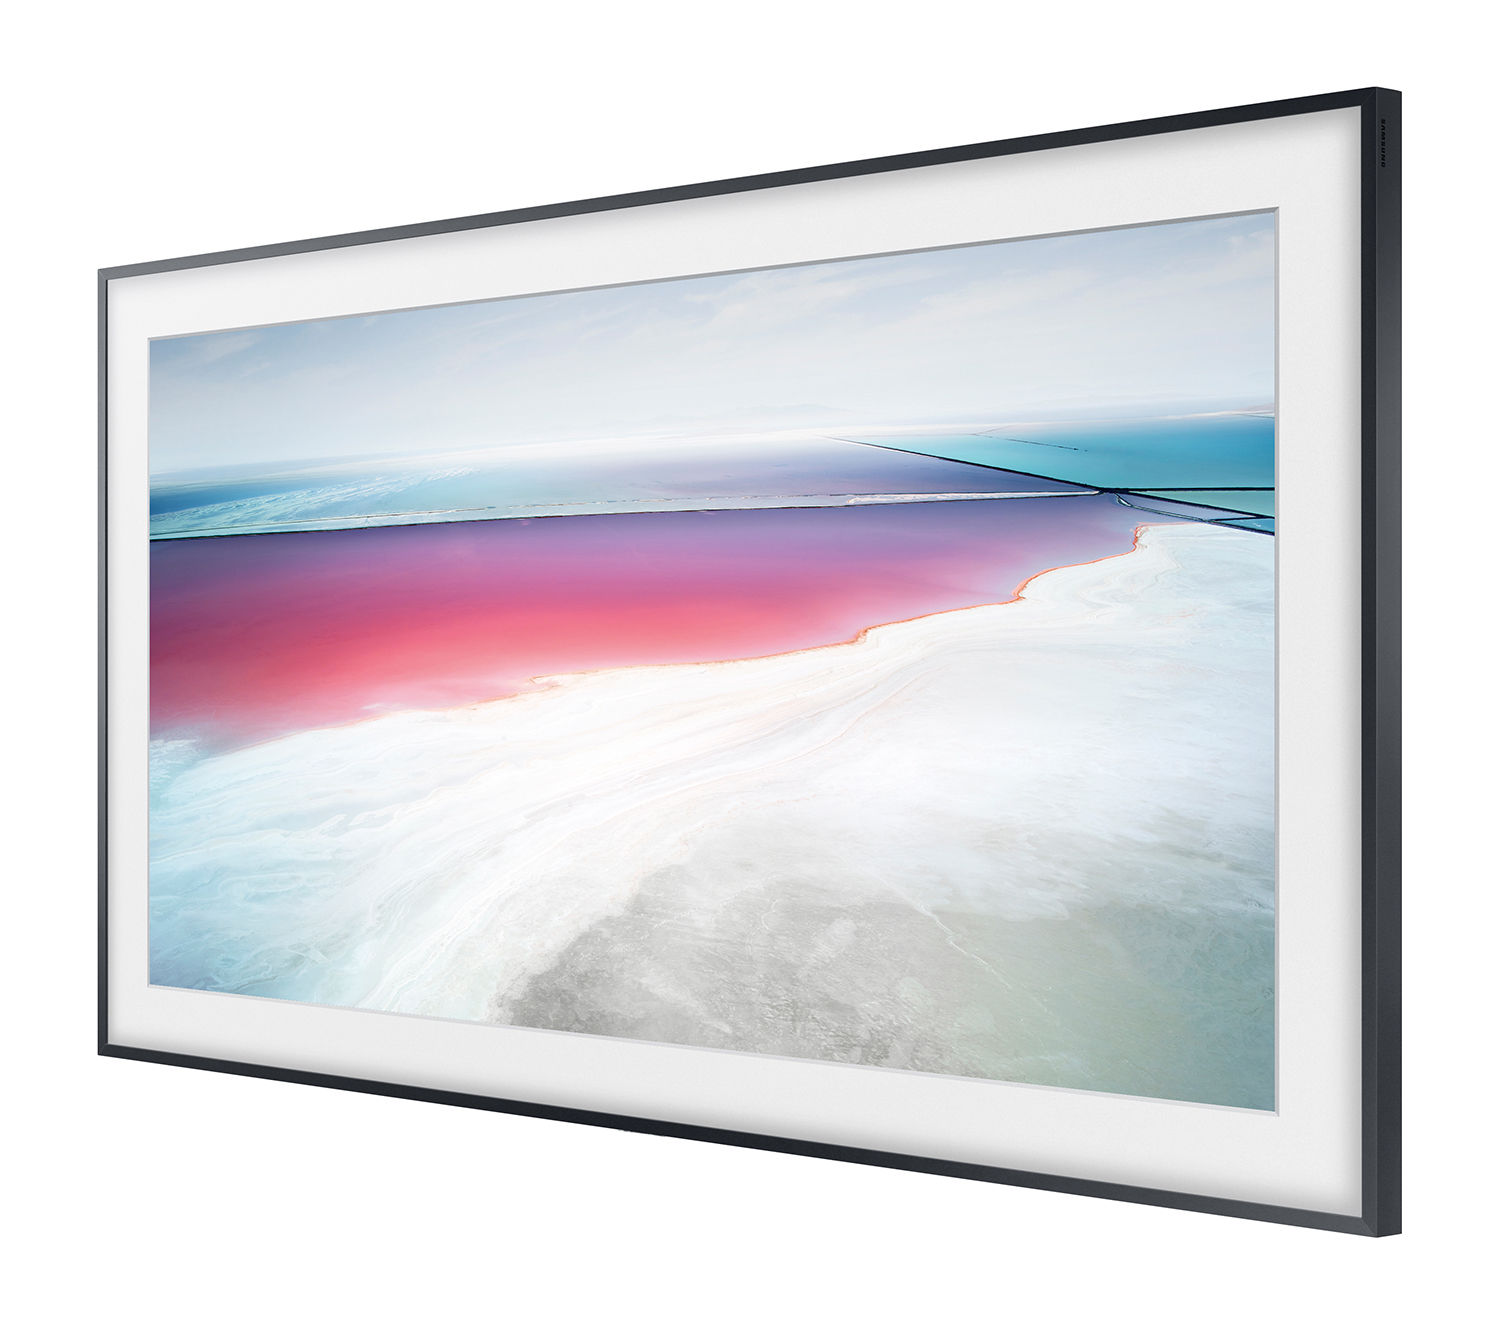 Samsung S New Tv Looks Like A Framed Artwork News